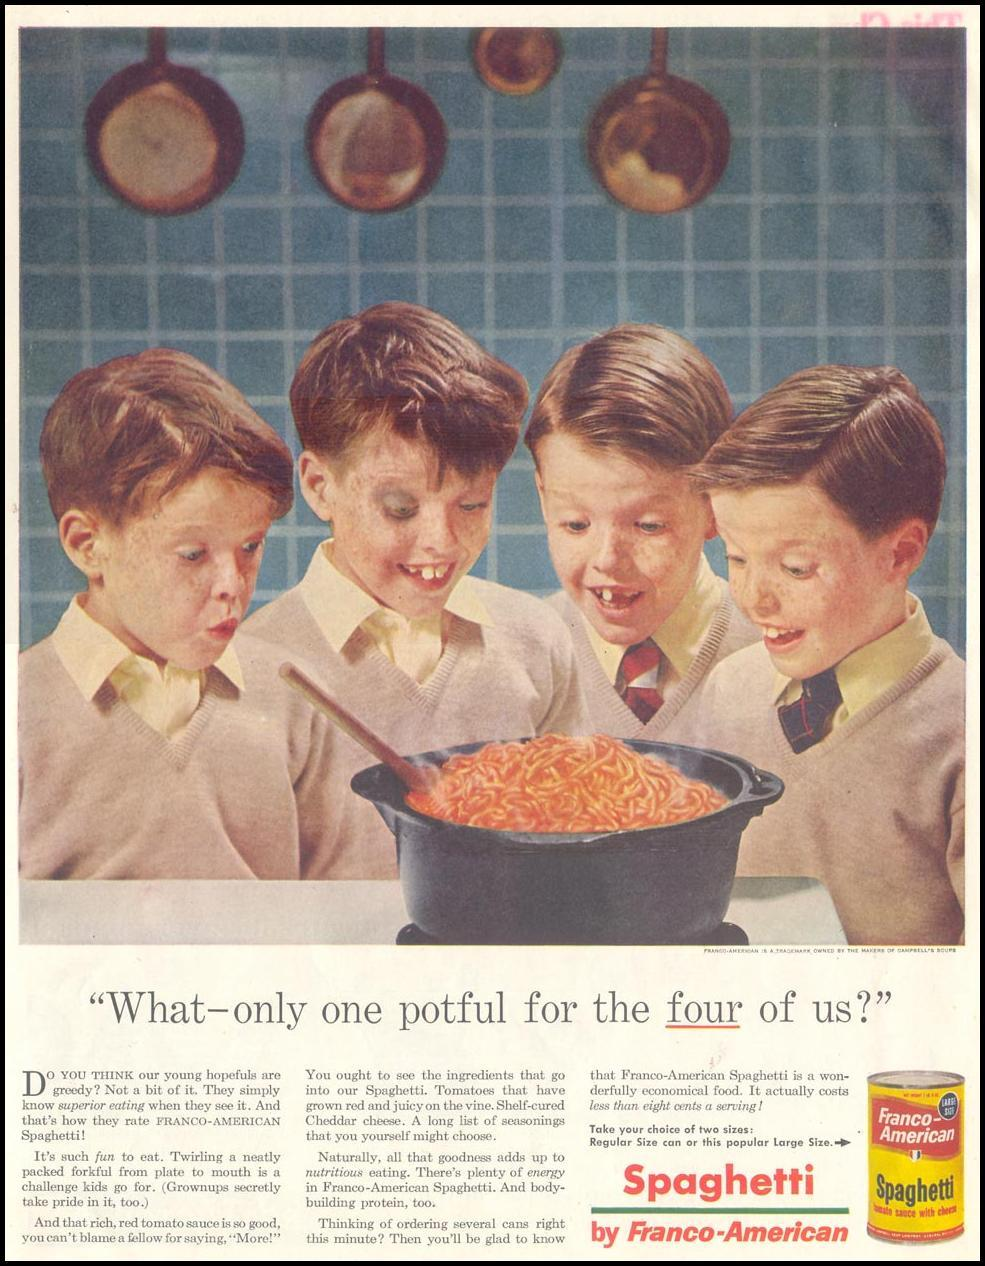 FRANCO-AMERICAN SPAGHETTI